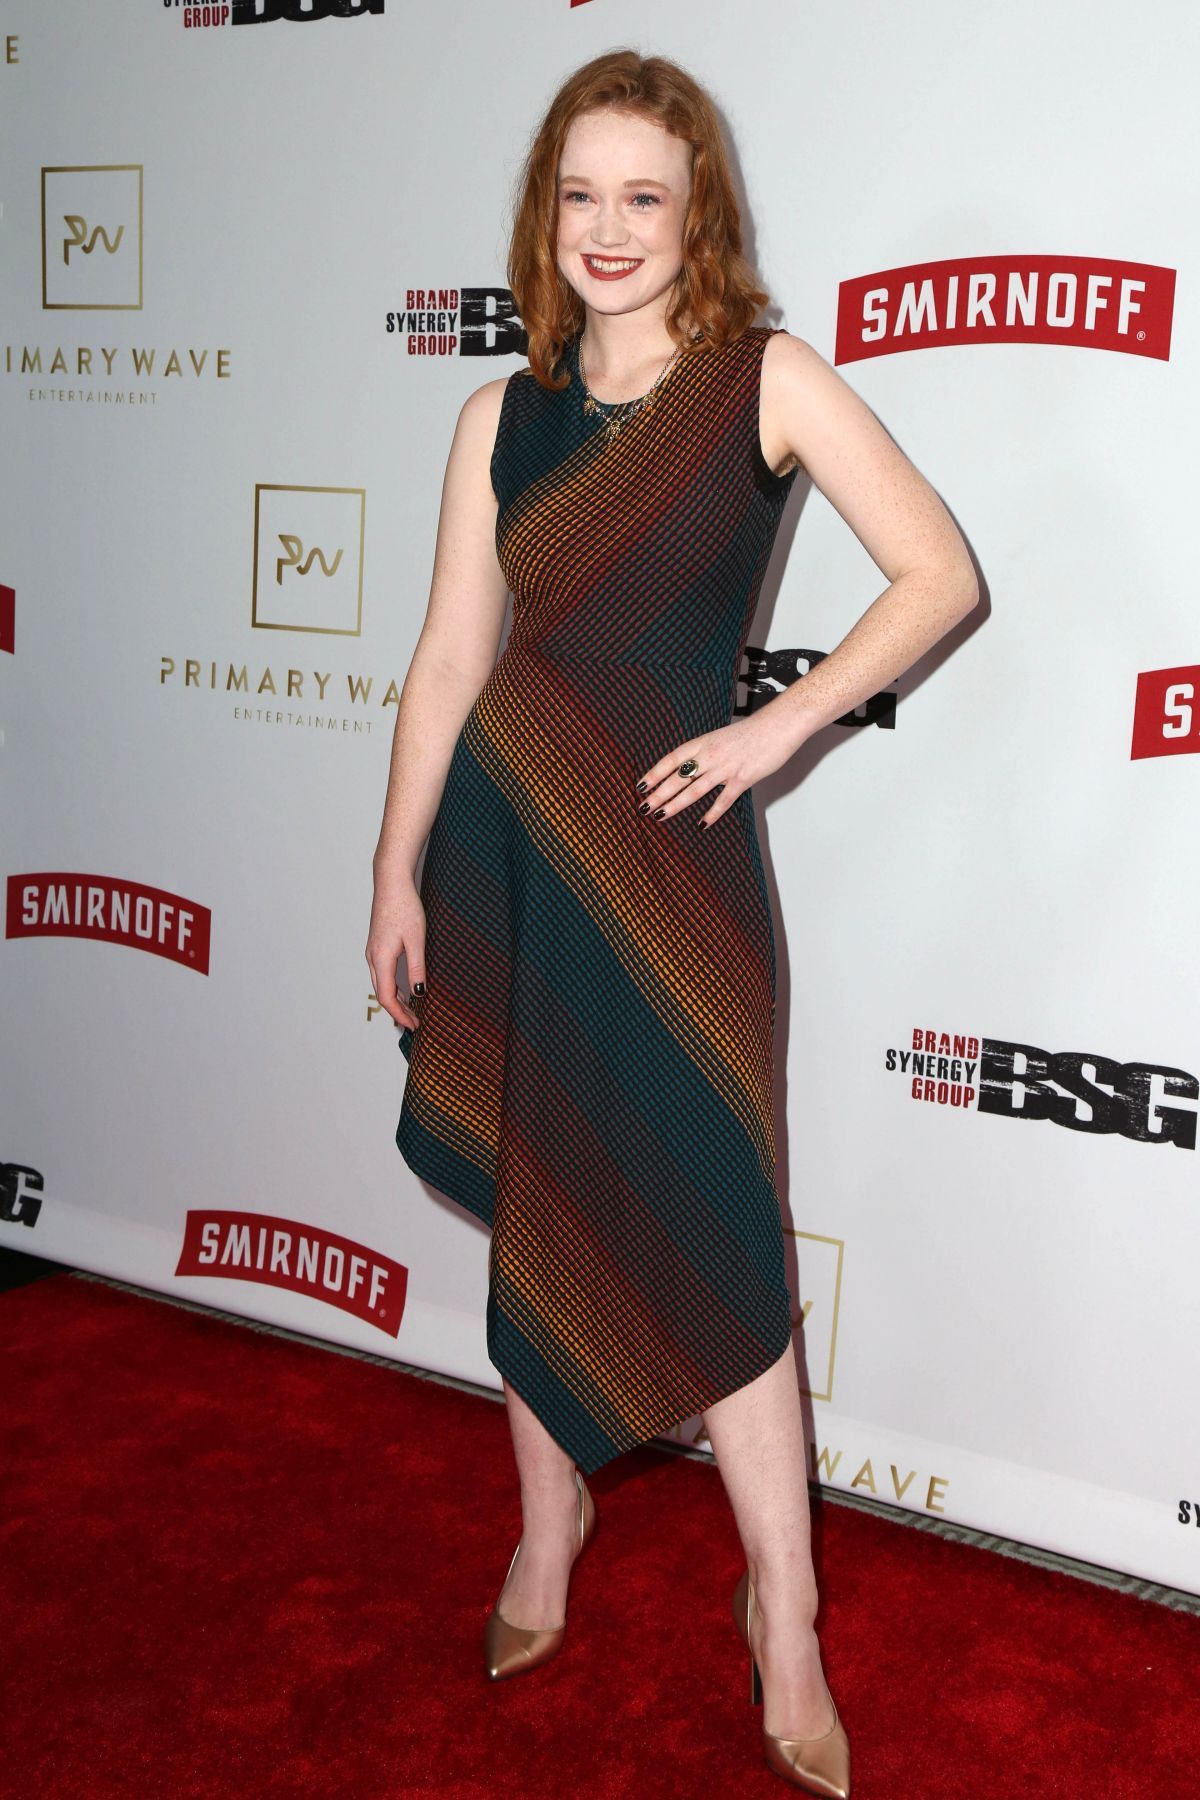 LIV HEWSON at Primary Wave 11th Annual Pre-Grammy Party in West Hollywood 02/11/2017